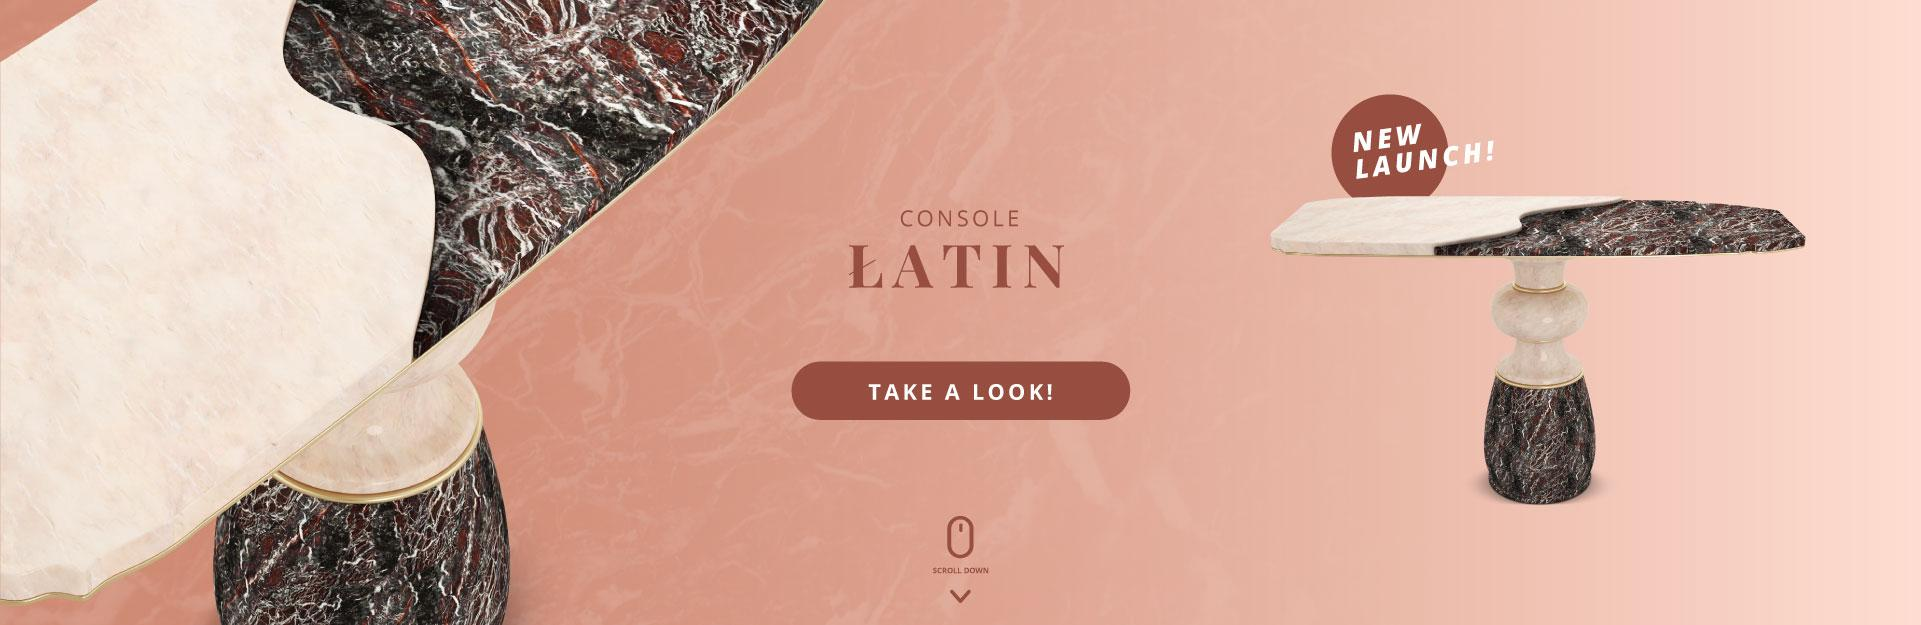 latin-console-banner